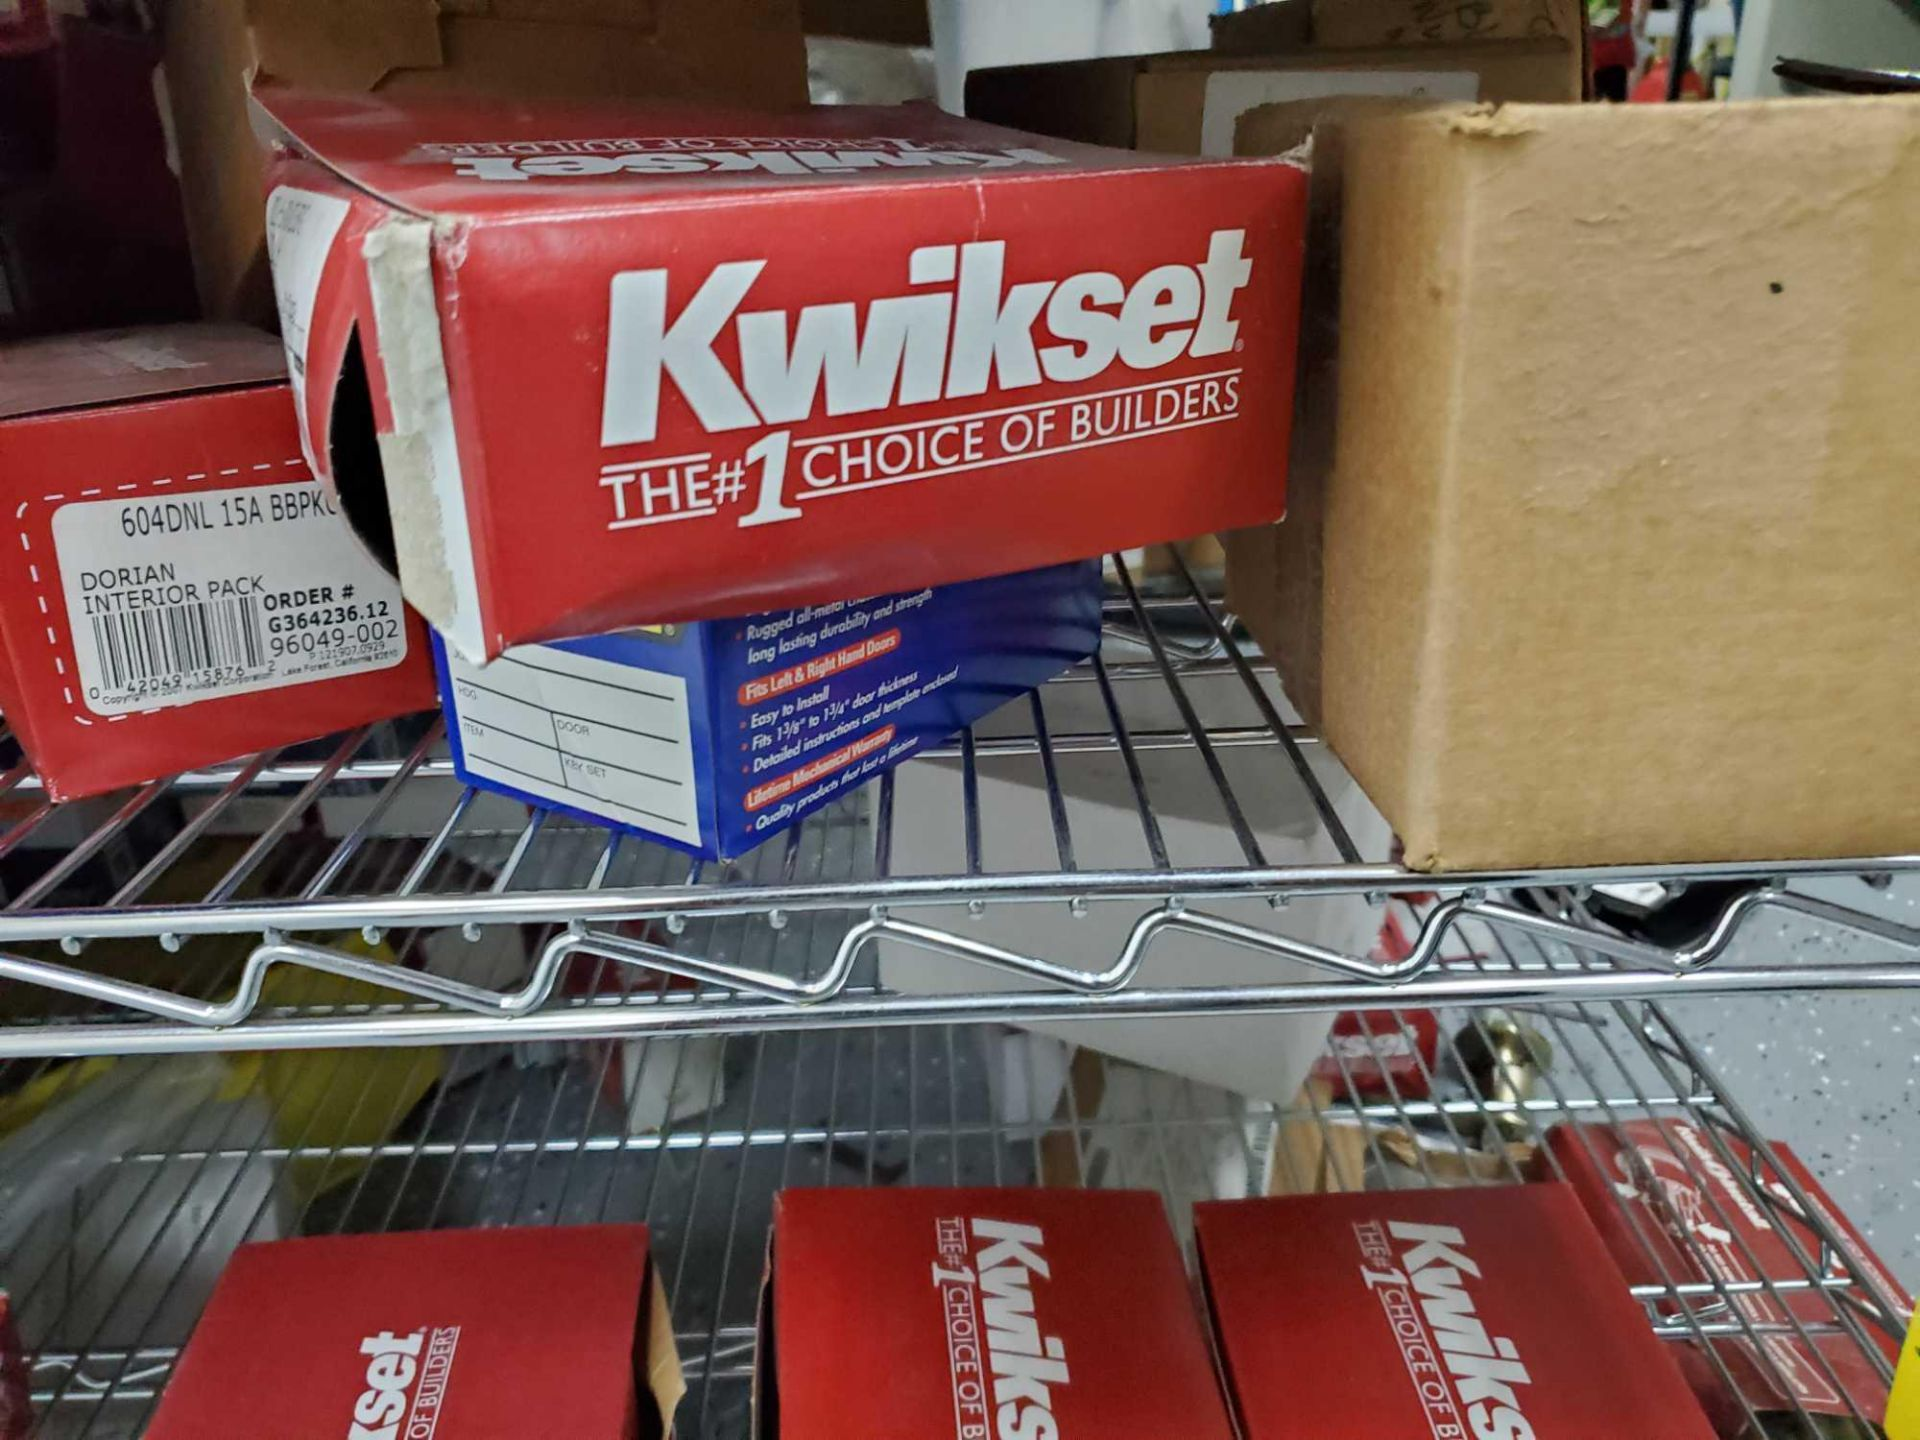 SHELF LOT OF KWIKSET SCHLAGE ETC APPROX 120 BOXES - Image 5 of 10